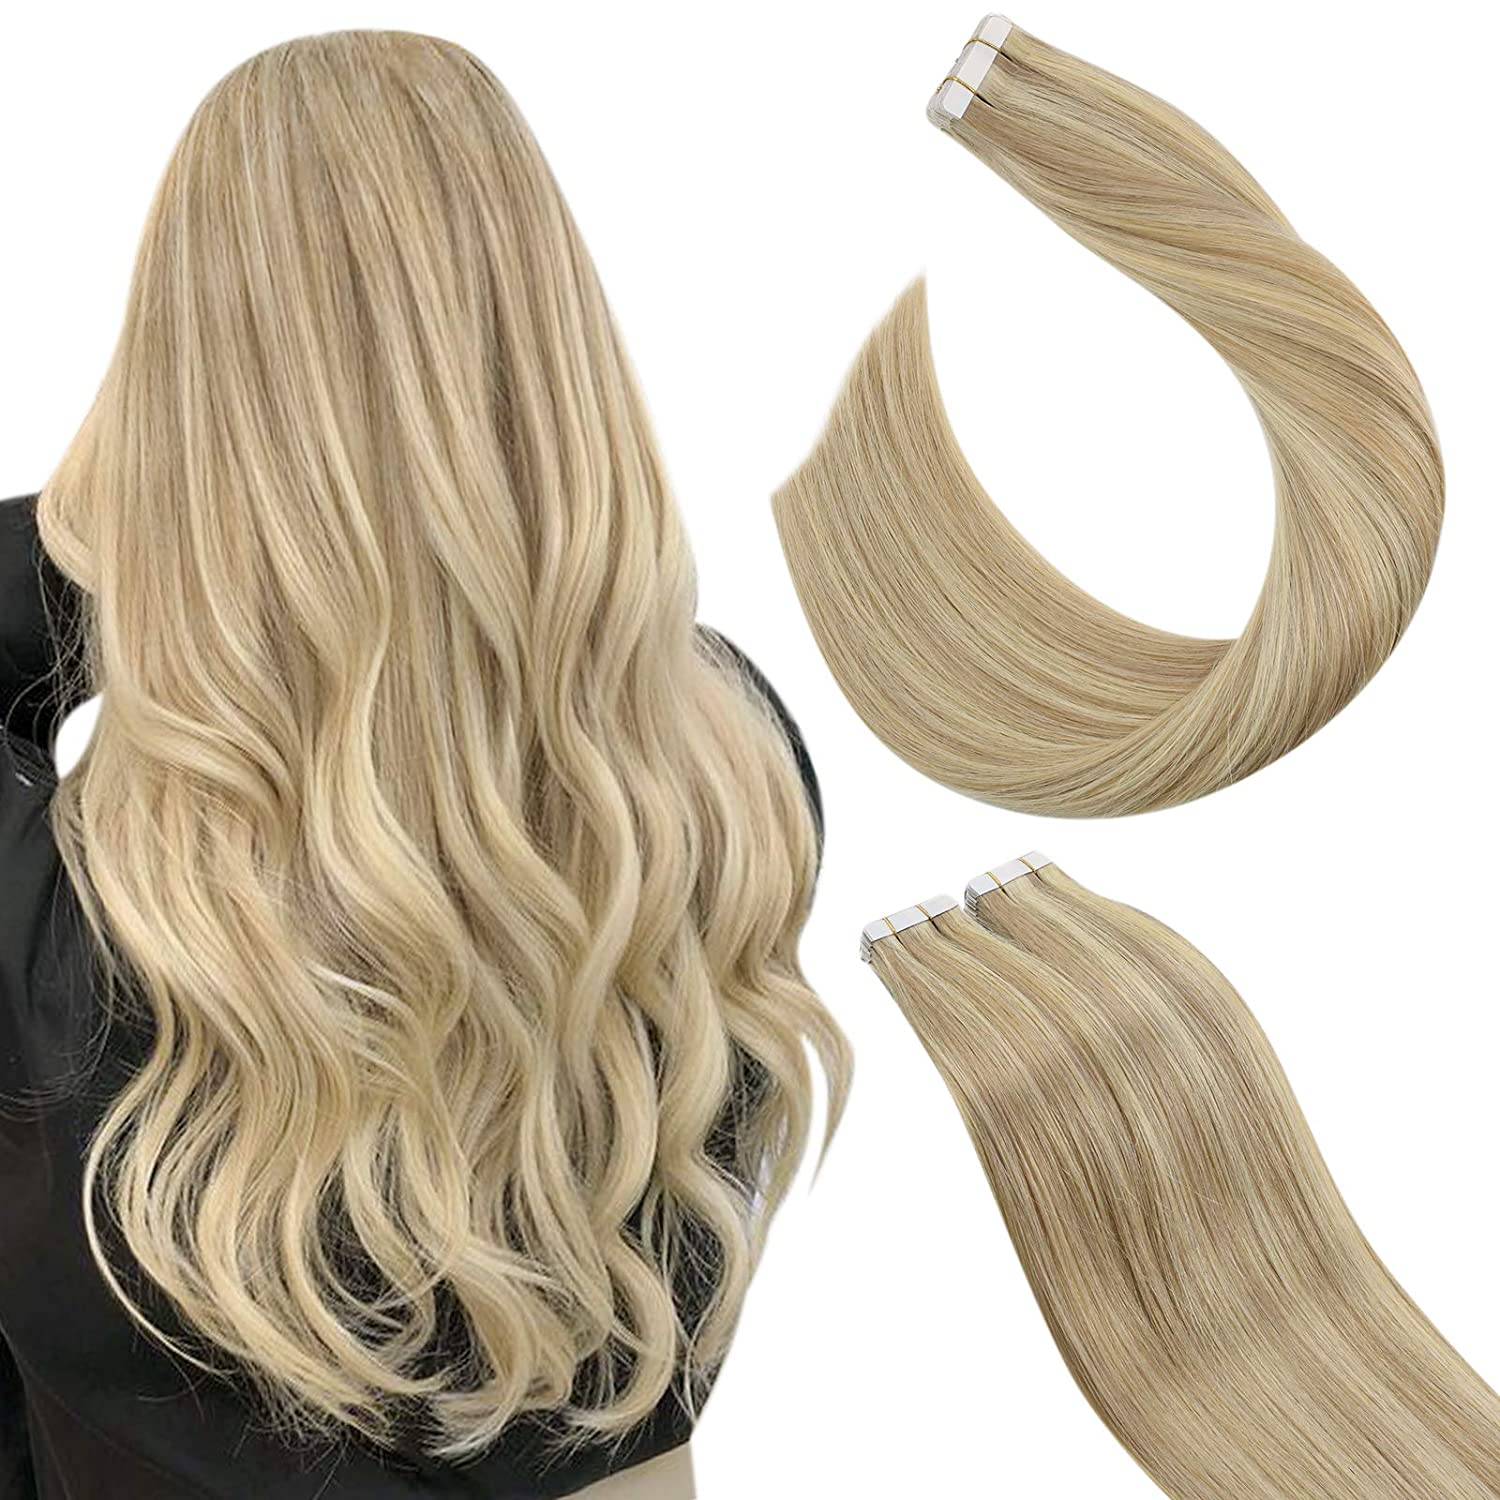 Ugeat 16 Inch Human Hair Extensions Highlight half Long-awaited Tape #27 in Carame